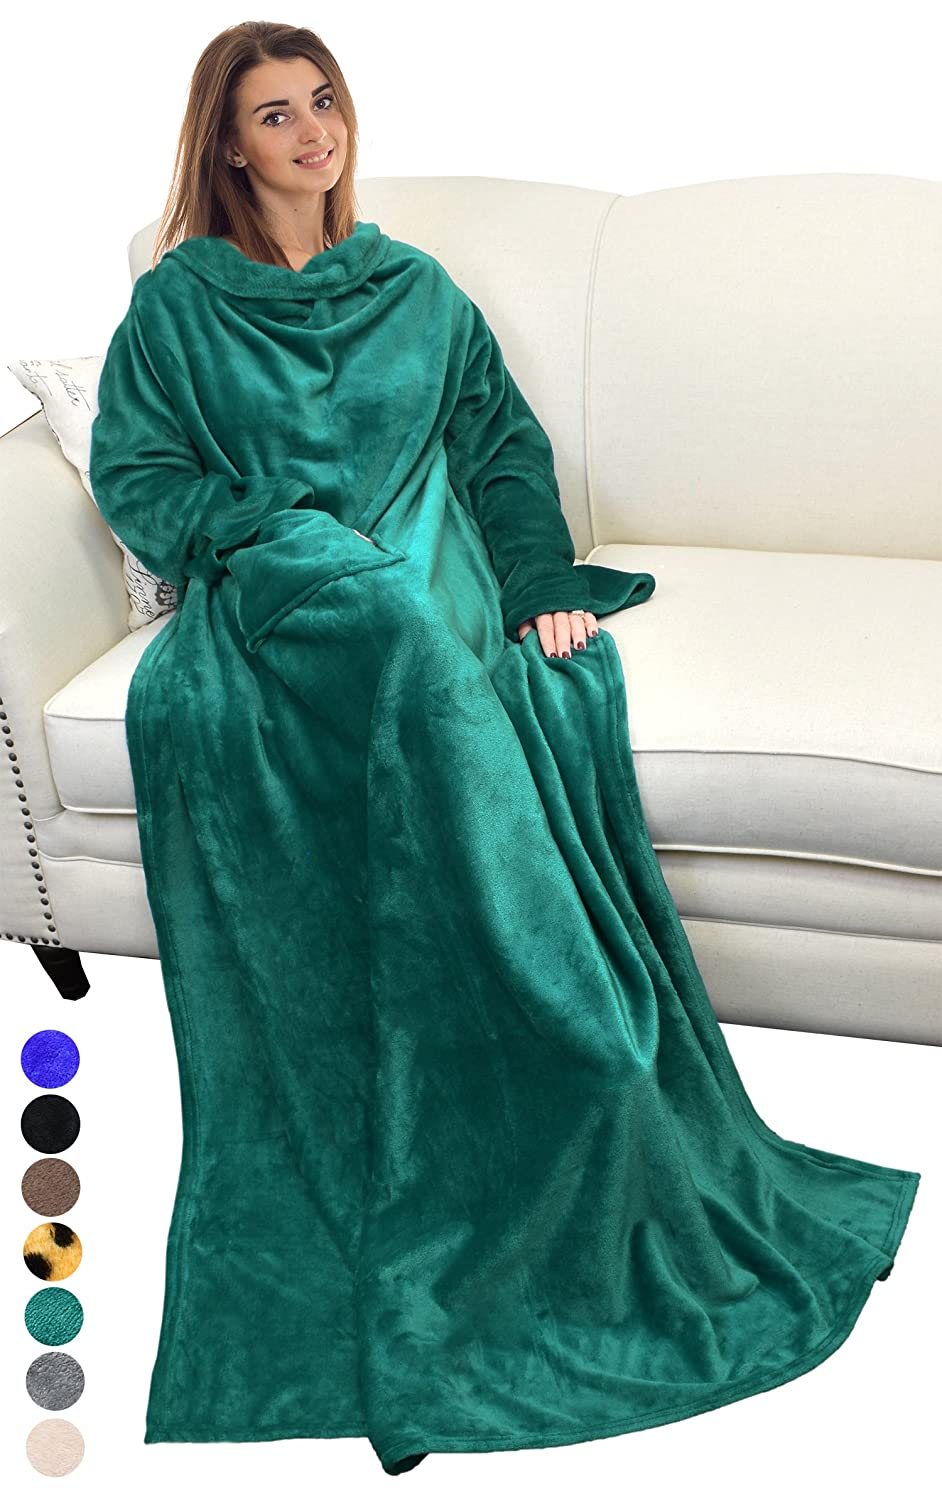 Catalonia Wearable Blanket with Sleeves and Pocket, Comfy Soft Fleece Mink Micro Plush Wrap Throws Blanket Robe for Women and...